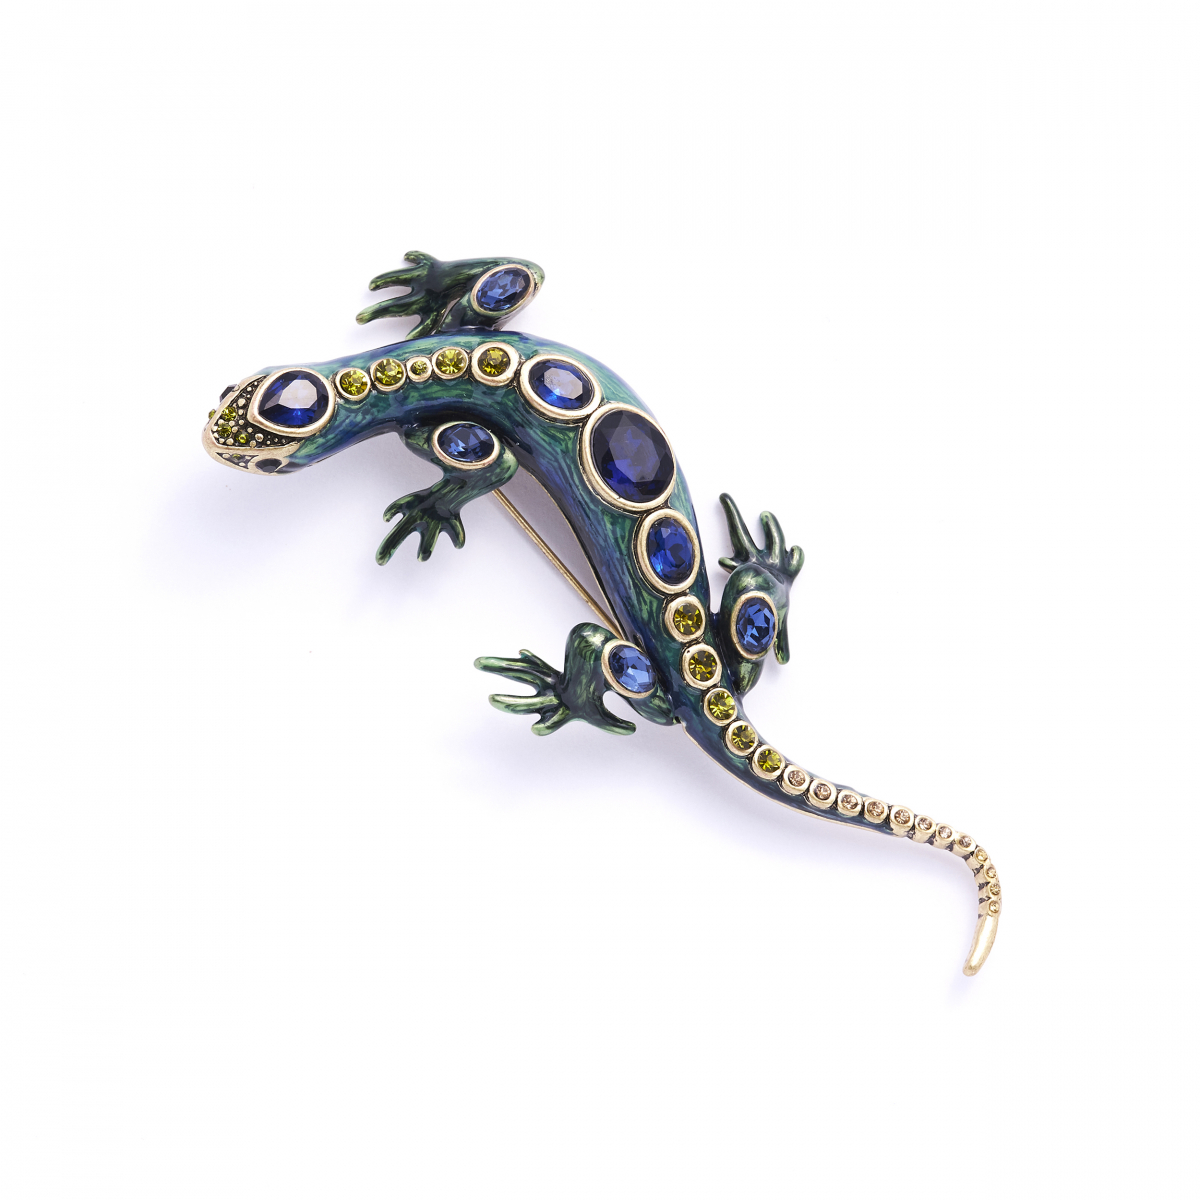 Bejewelled Lizard Brooch